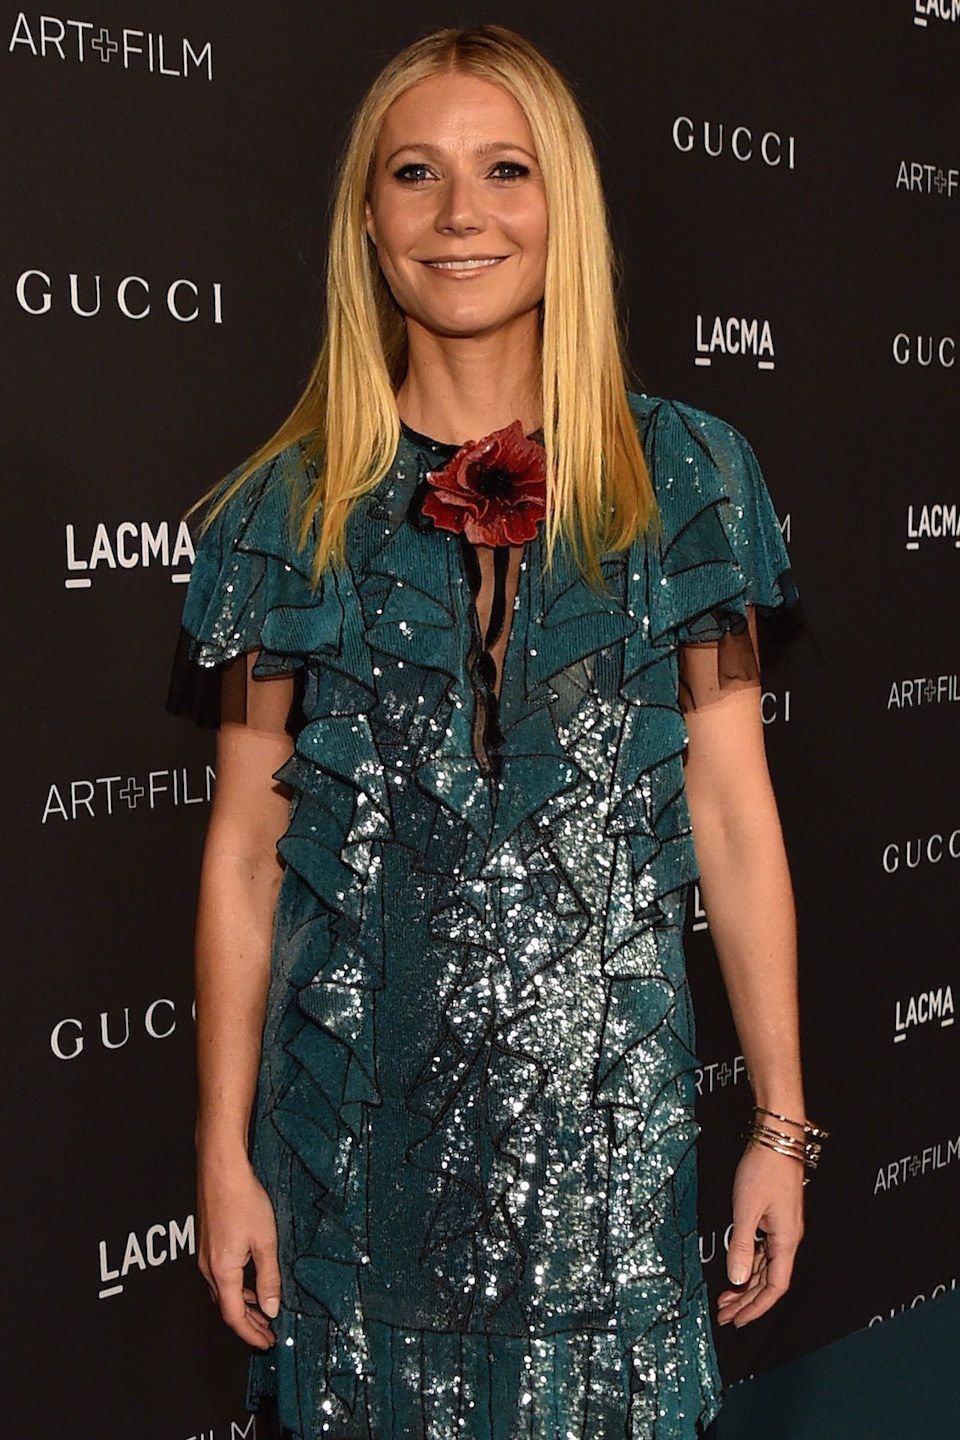 Gwyneth Paltrow's Goop pop-up shop in New York City was robbed of more than $170,000 in merchandise.